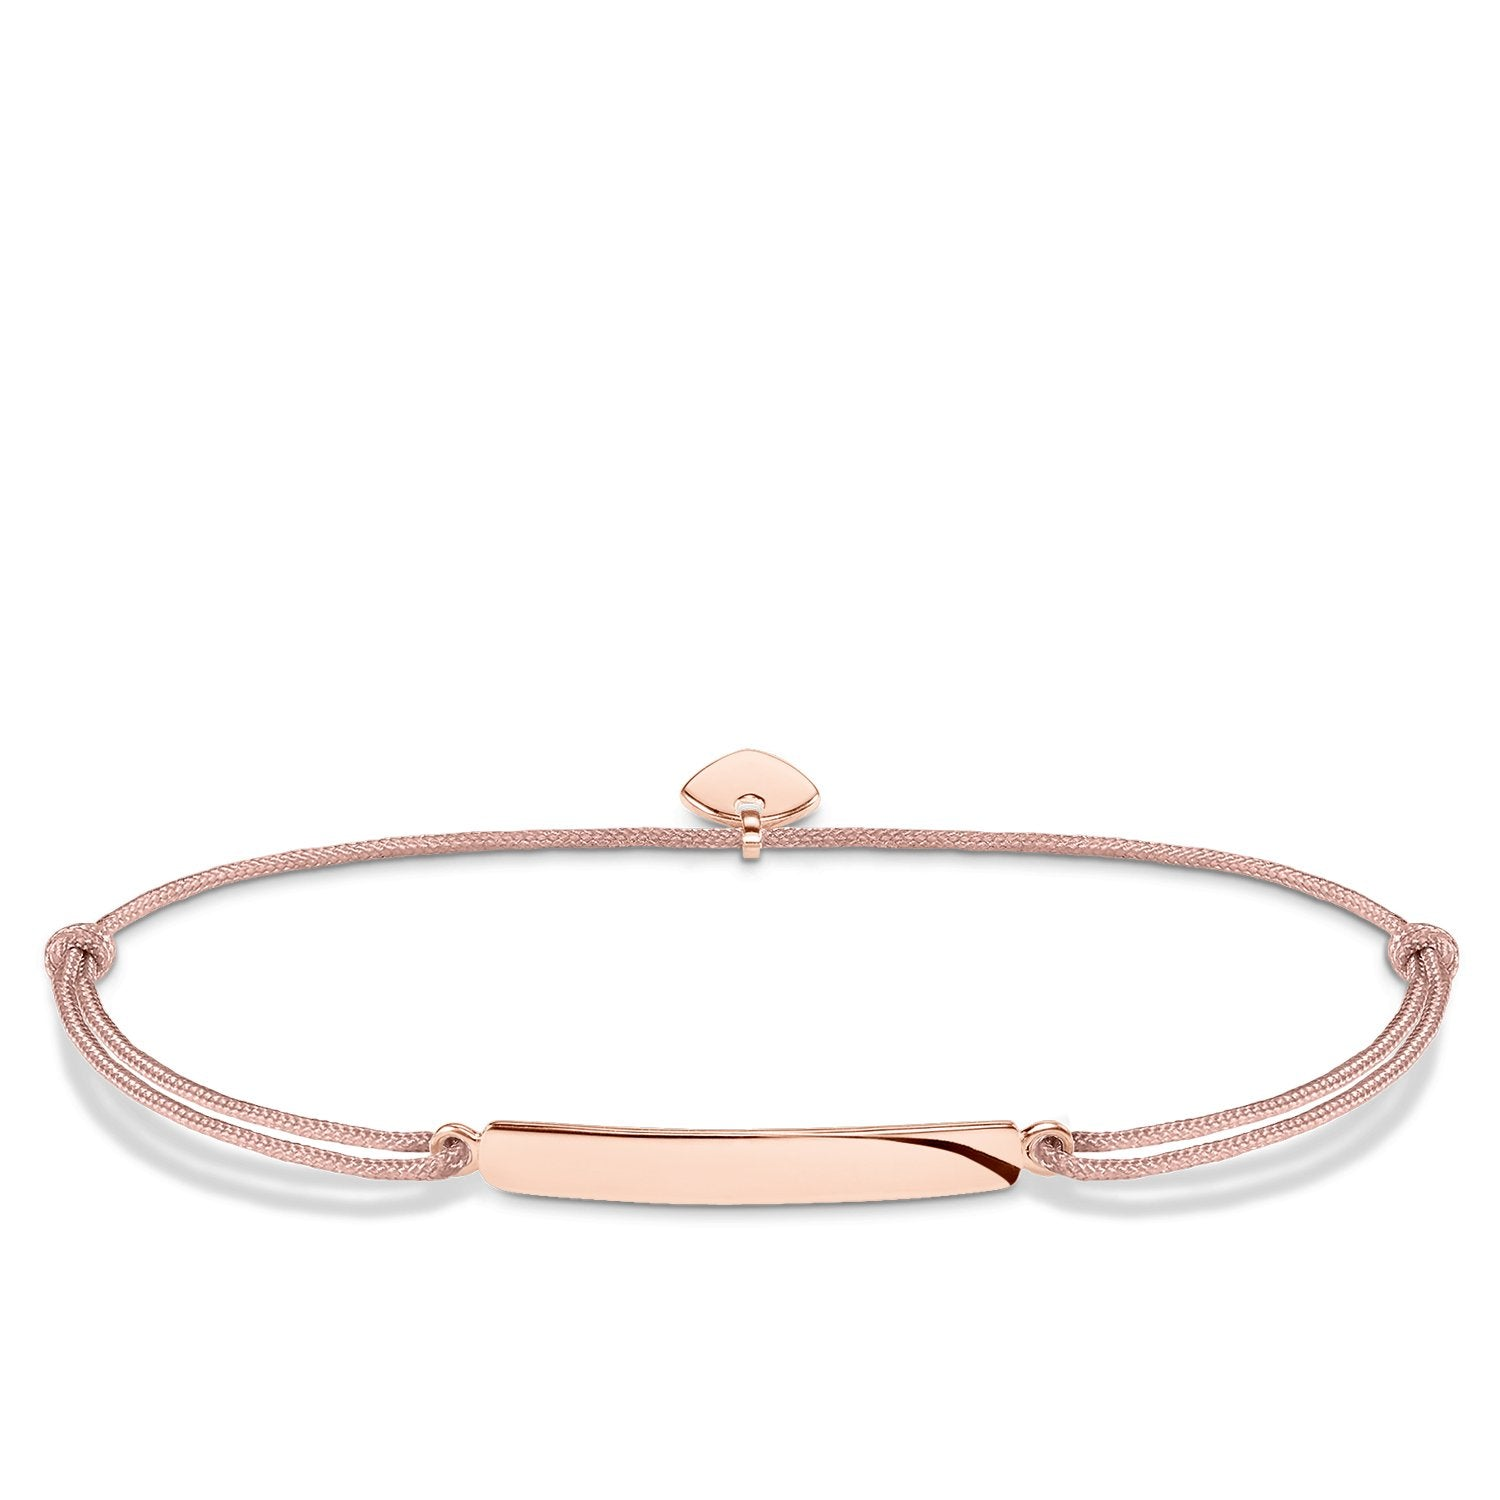 Thomas Sabo Rose-Gold Toned Beige Nylon Little Secret Bracelet